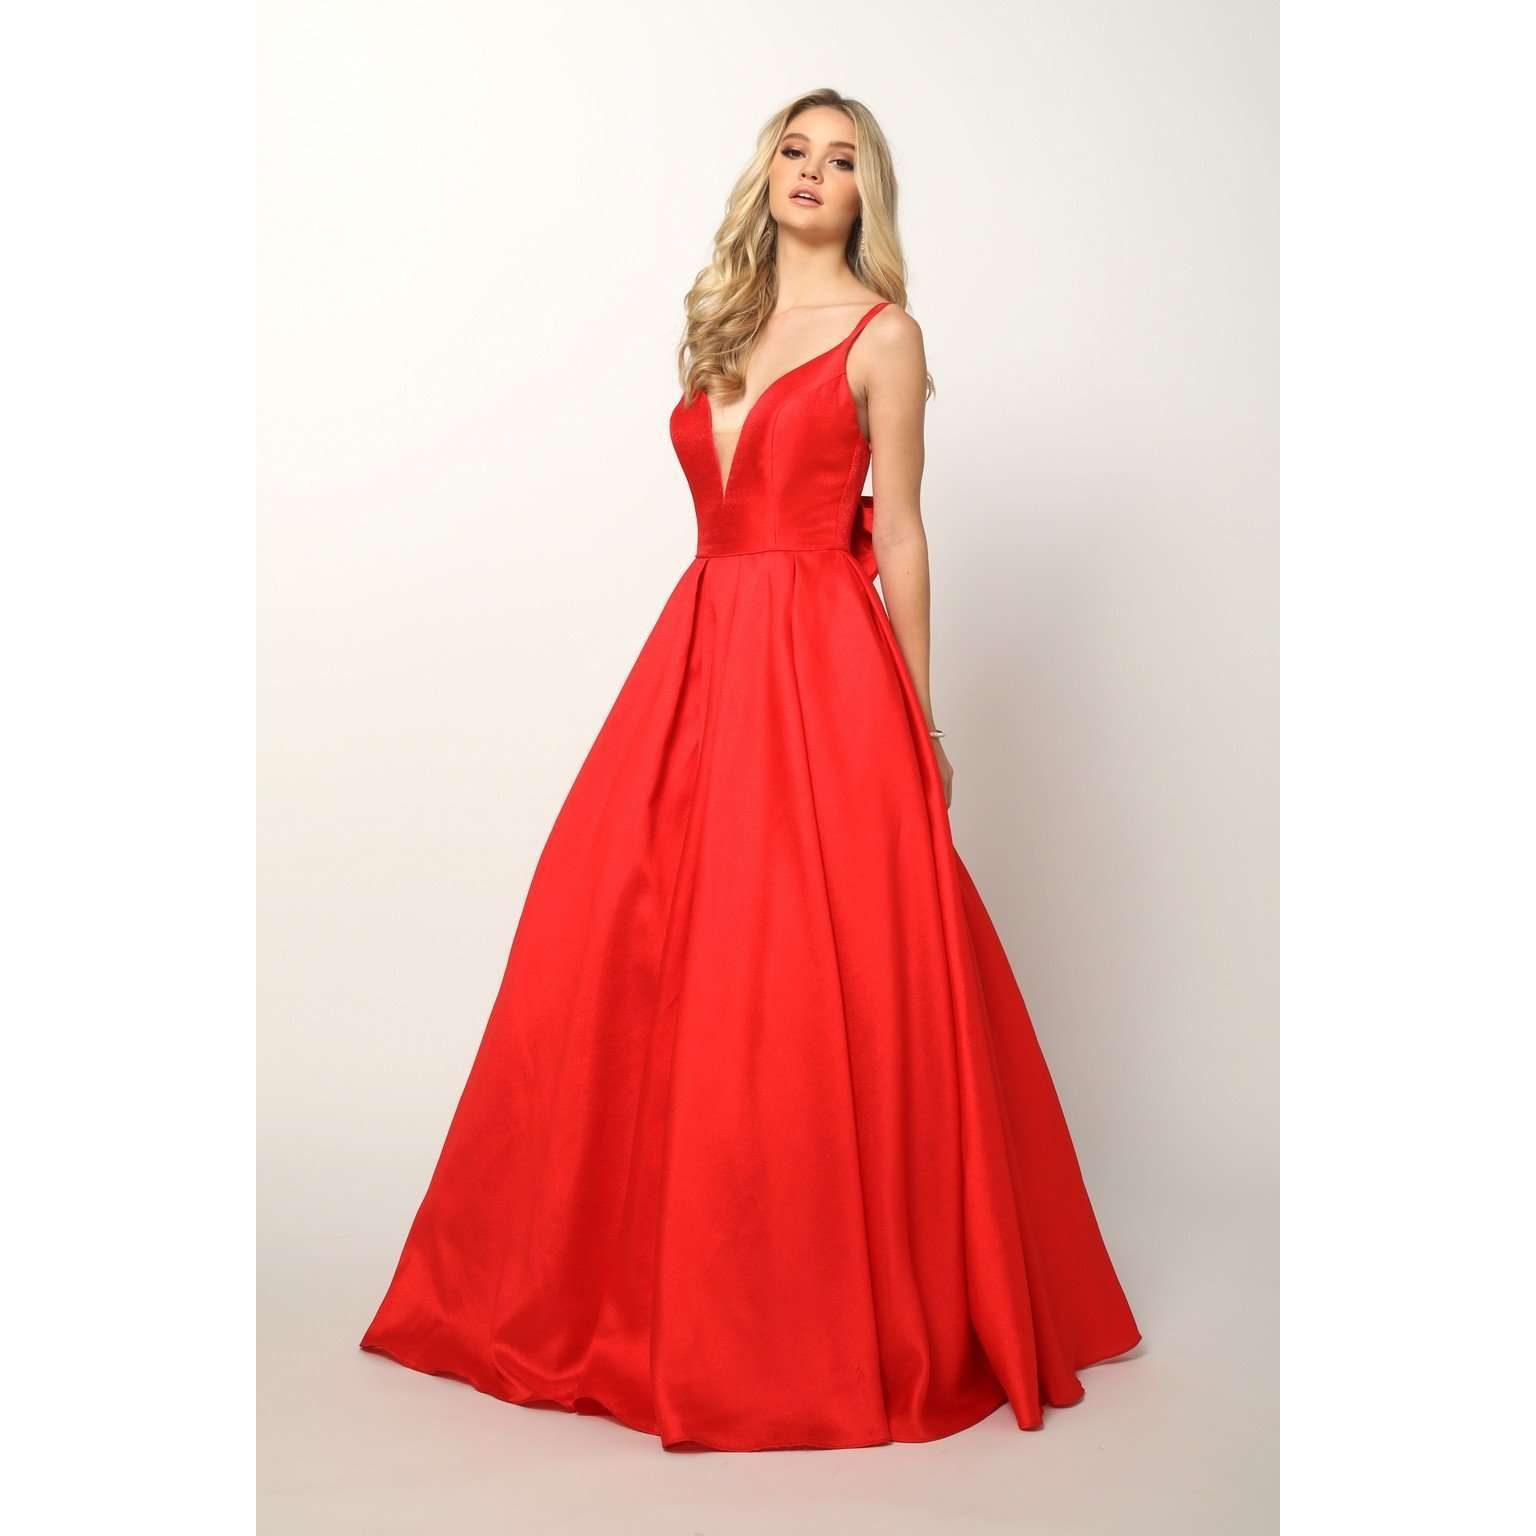 Ball Gown Style Prom Dress with Removable Bow 686 - Julietdresses